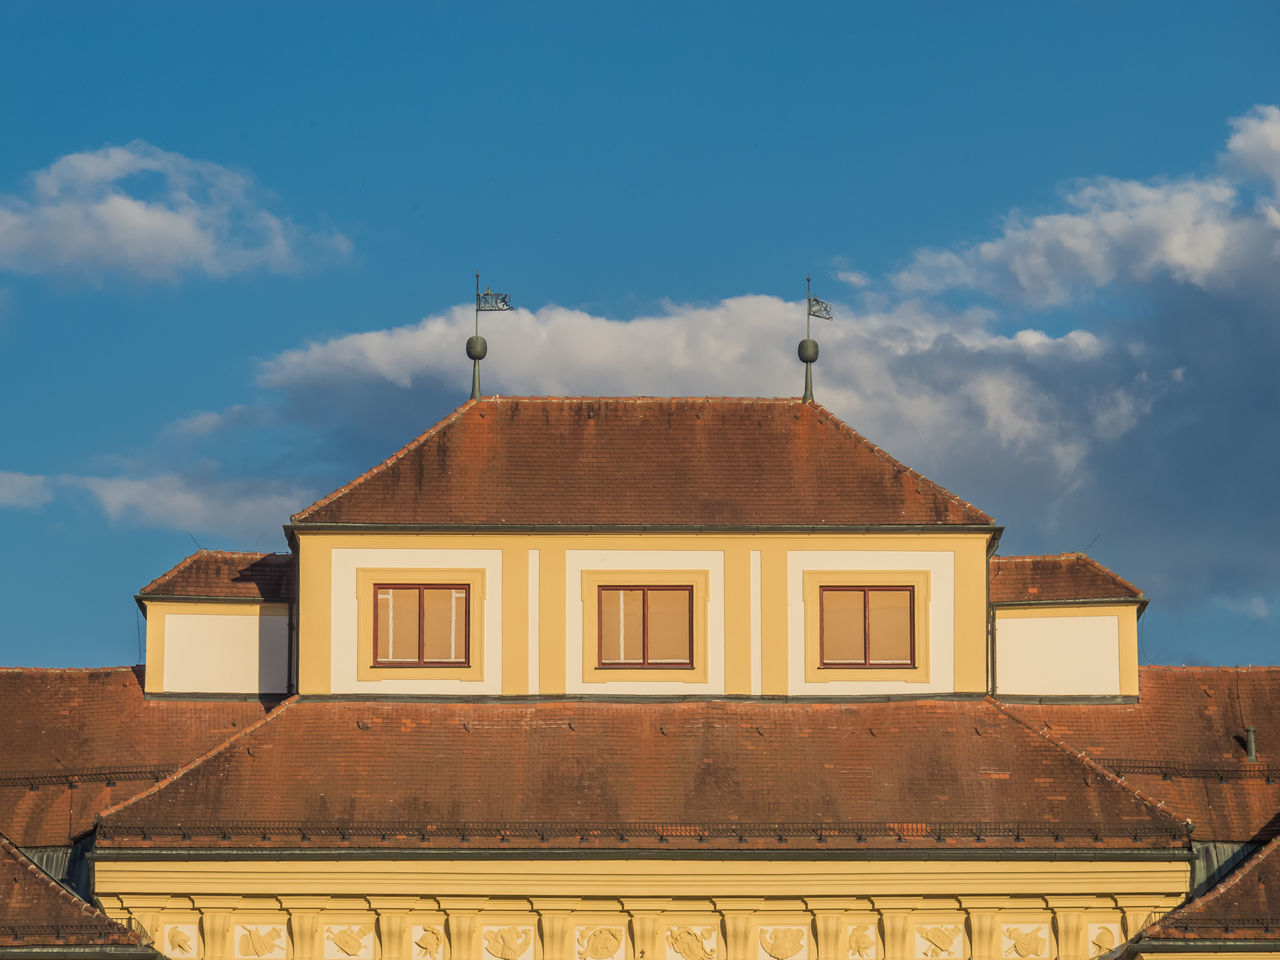 architecture, built structure, building exterior, cloud - sky, sky, outdoors, day, no people, history, low angle view, place of worship, roof, nature